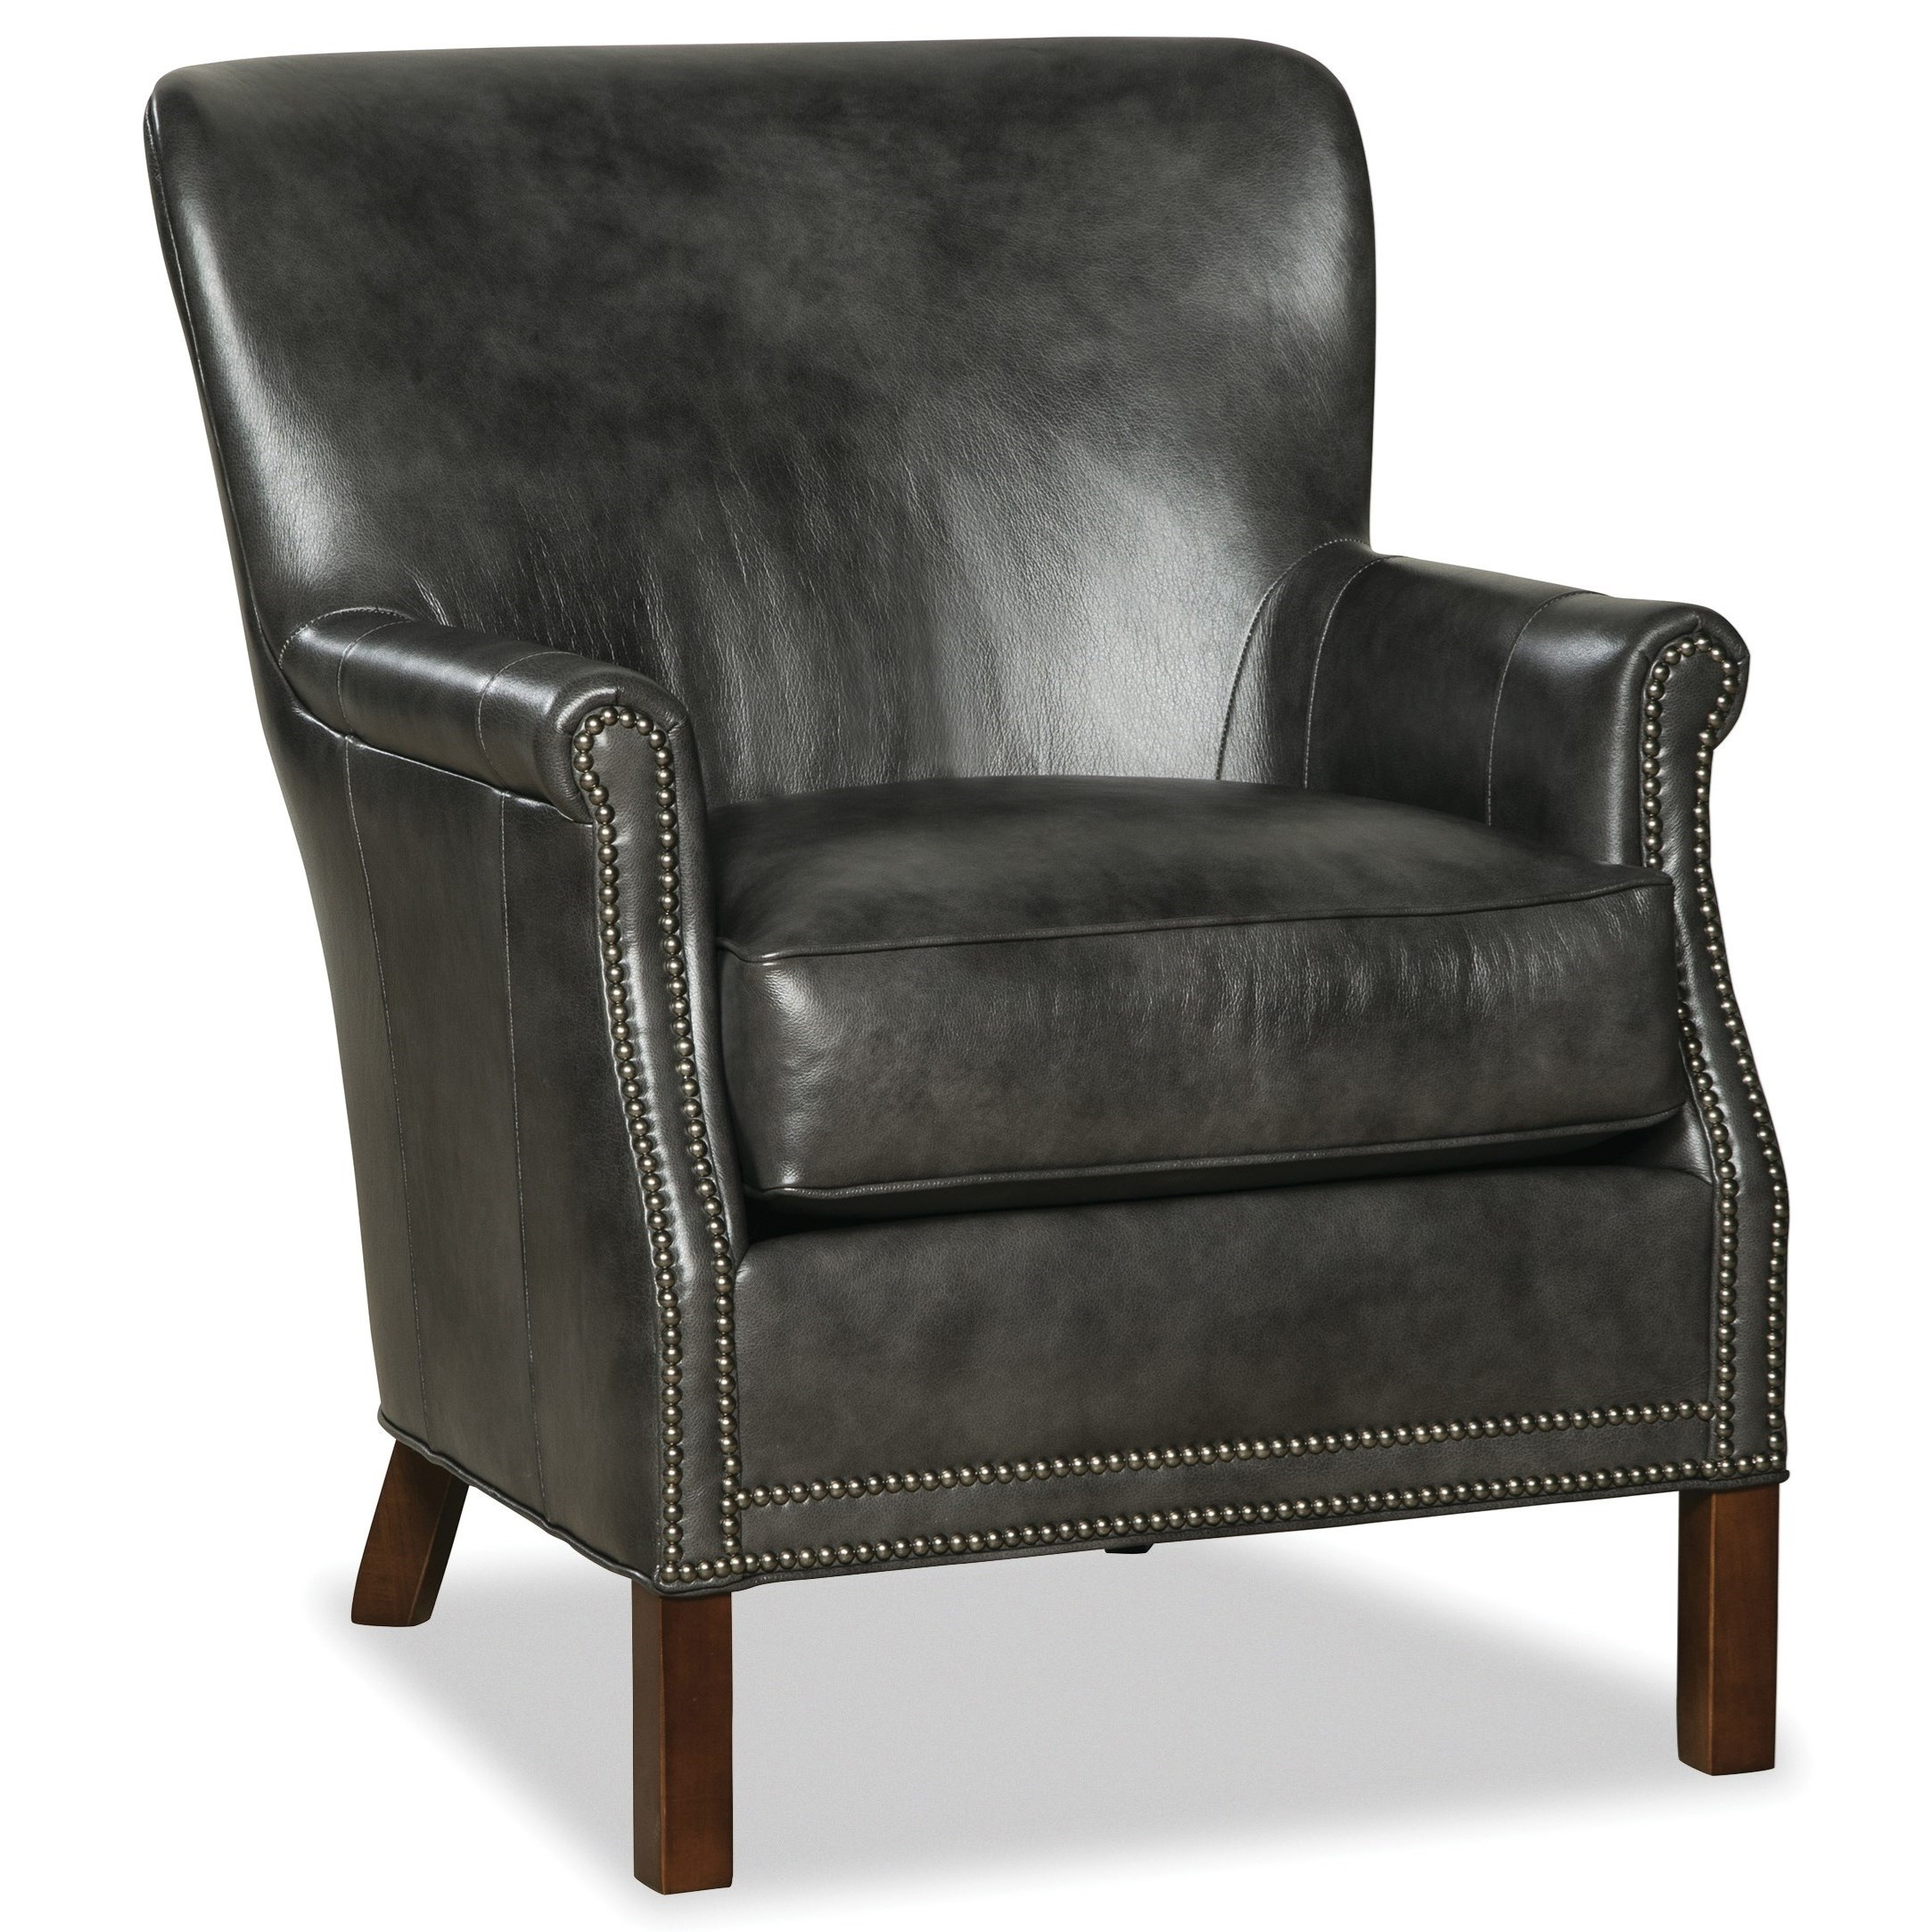 L022210BD Chair by Craftmaster at Baer's Furniture